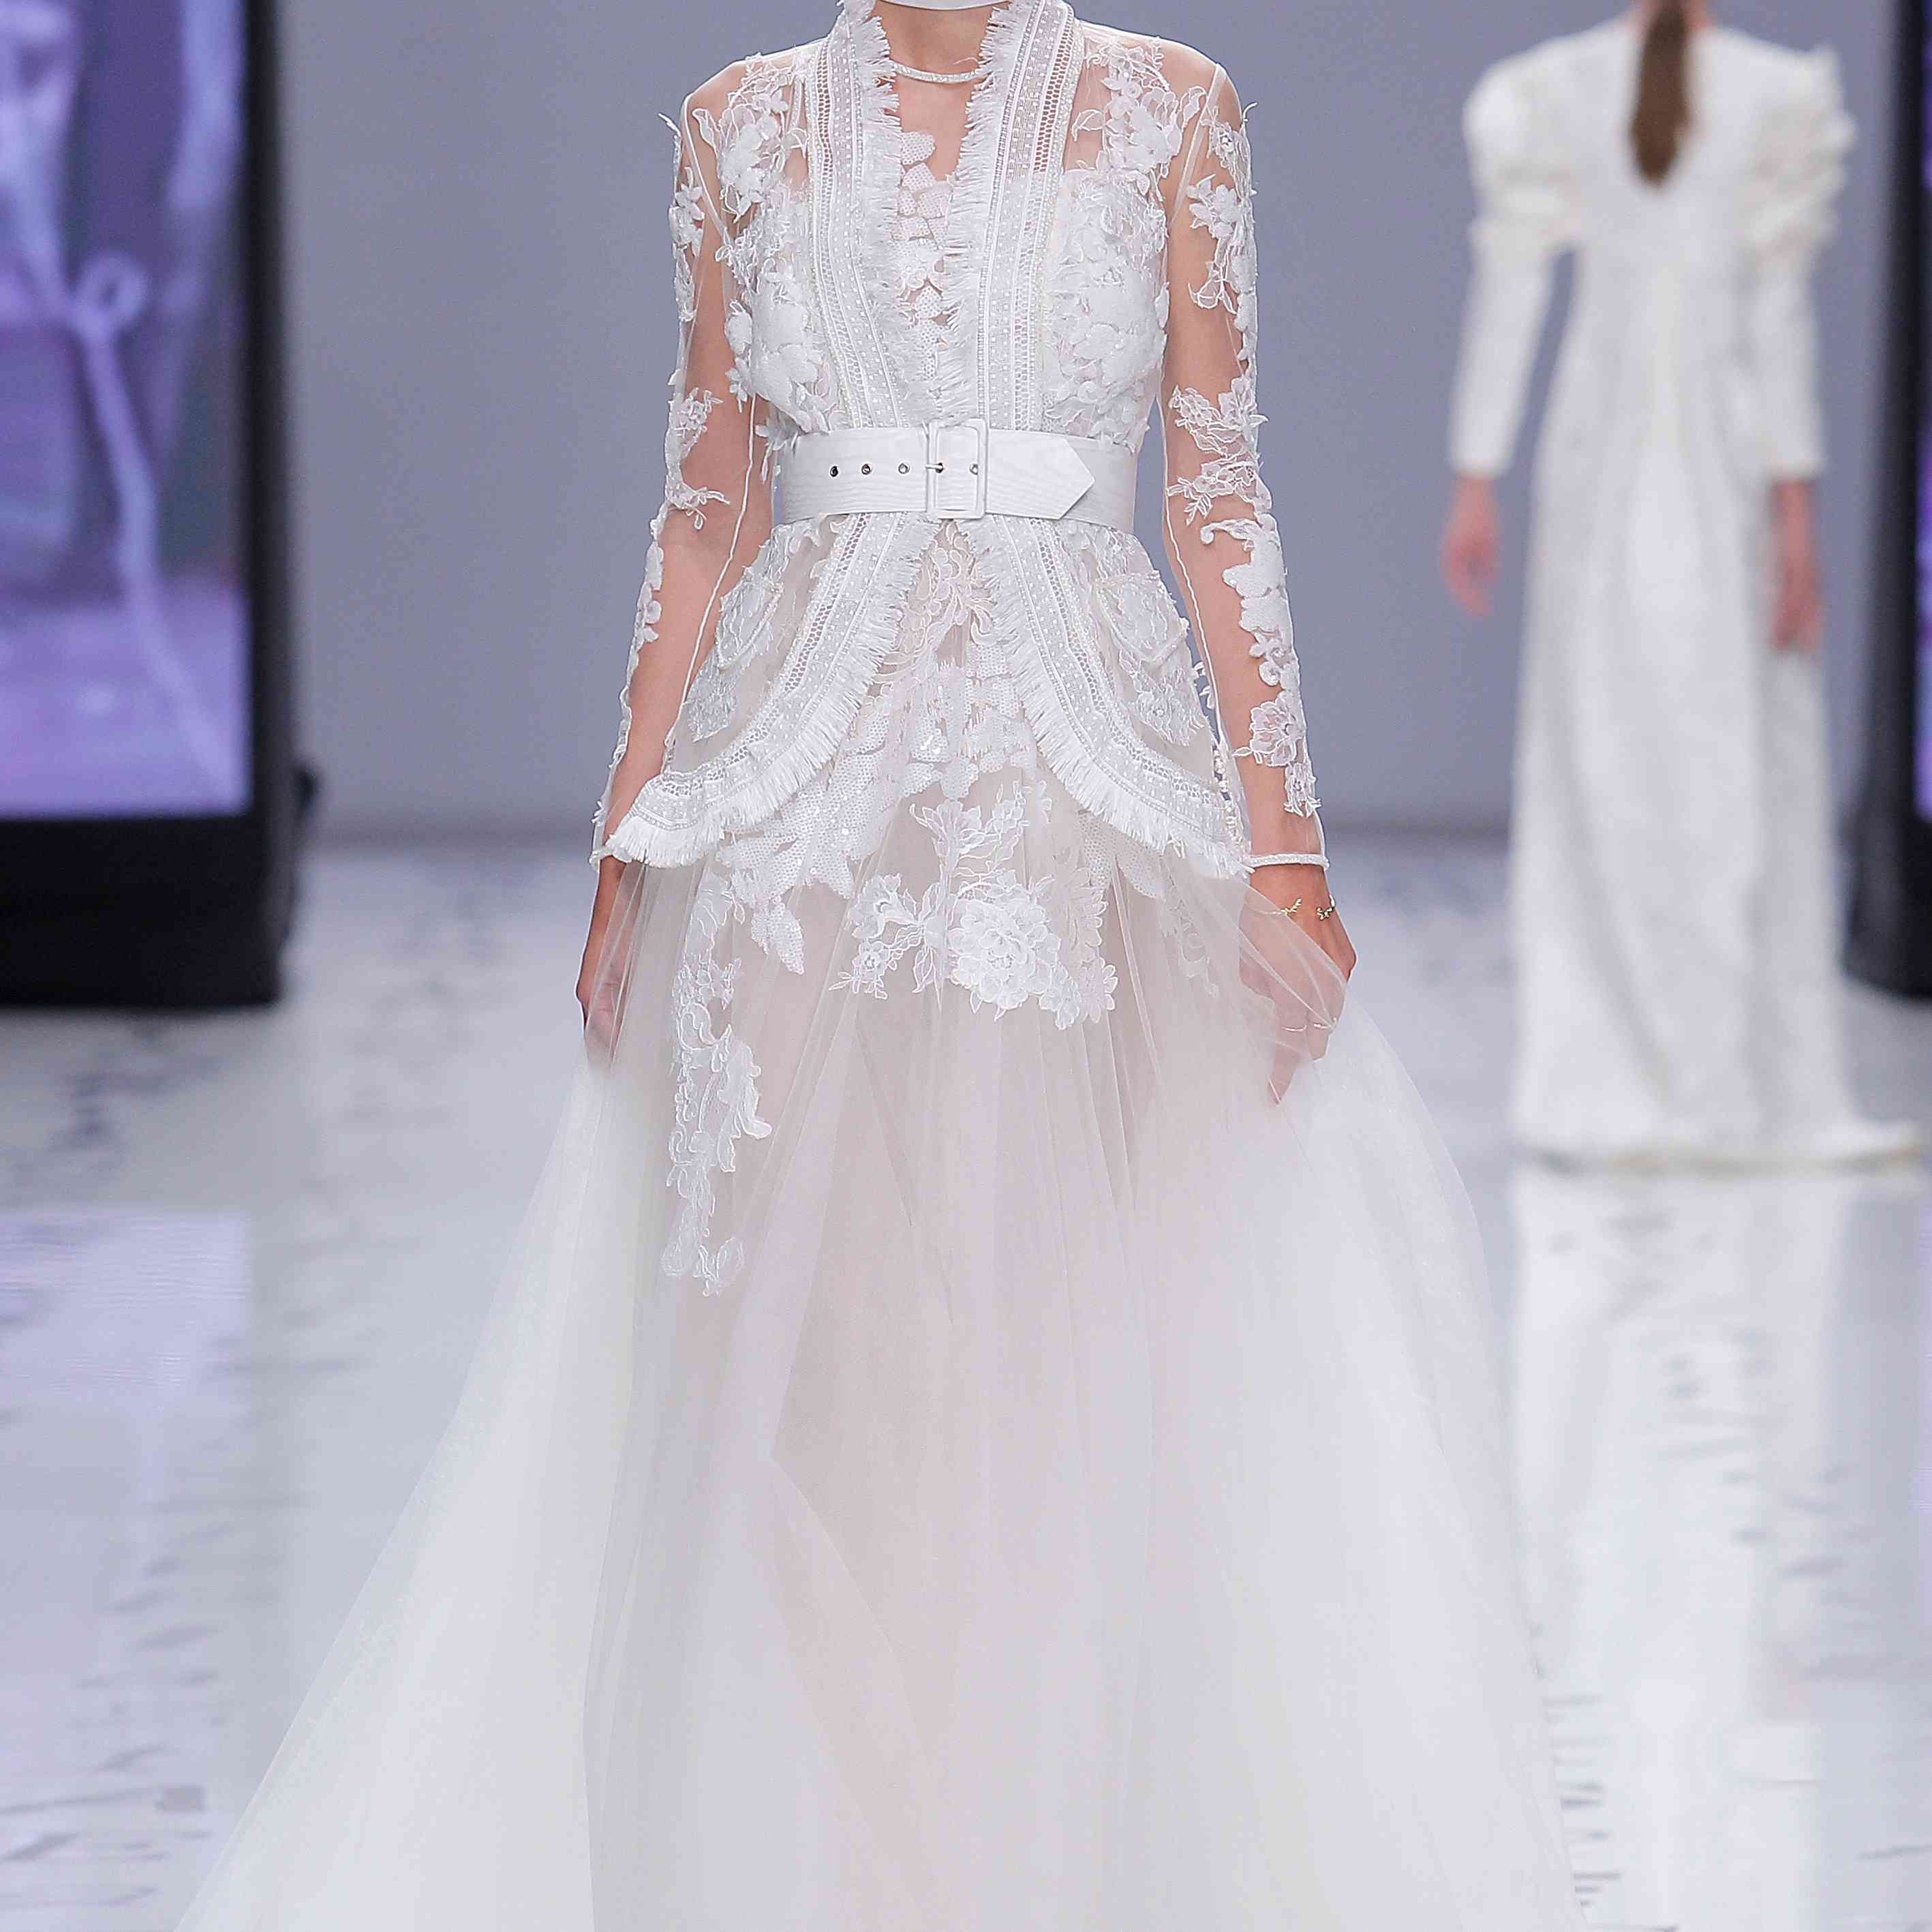 Model in a strapless princess dress with sequined embroidered lace and a chiffon skirt and a tulle jacket embroidered lace, rhinestones, and fringe, with a wide white belt at the waist